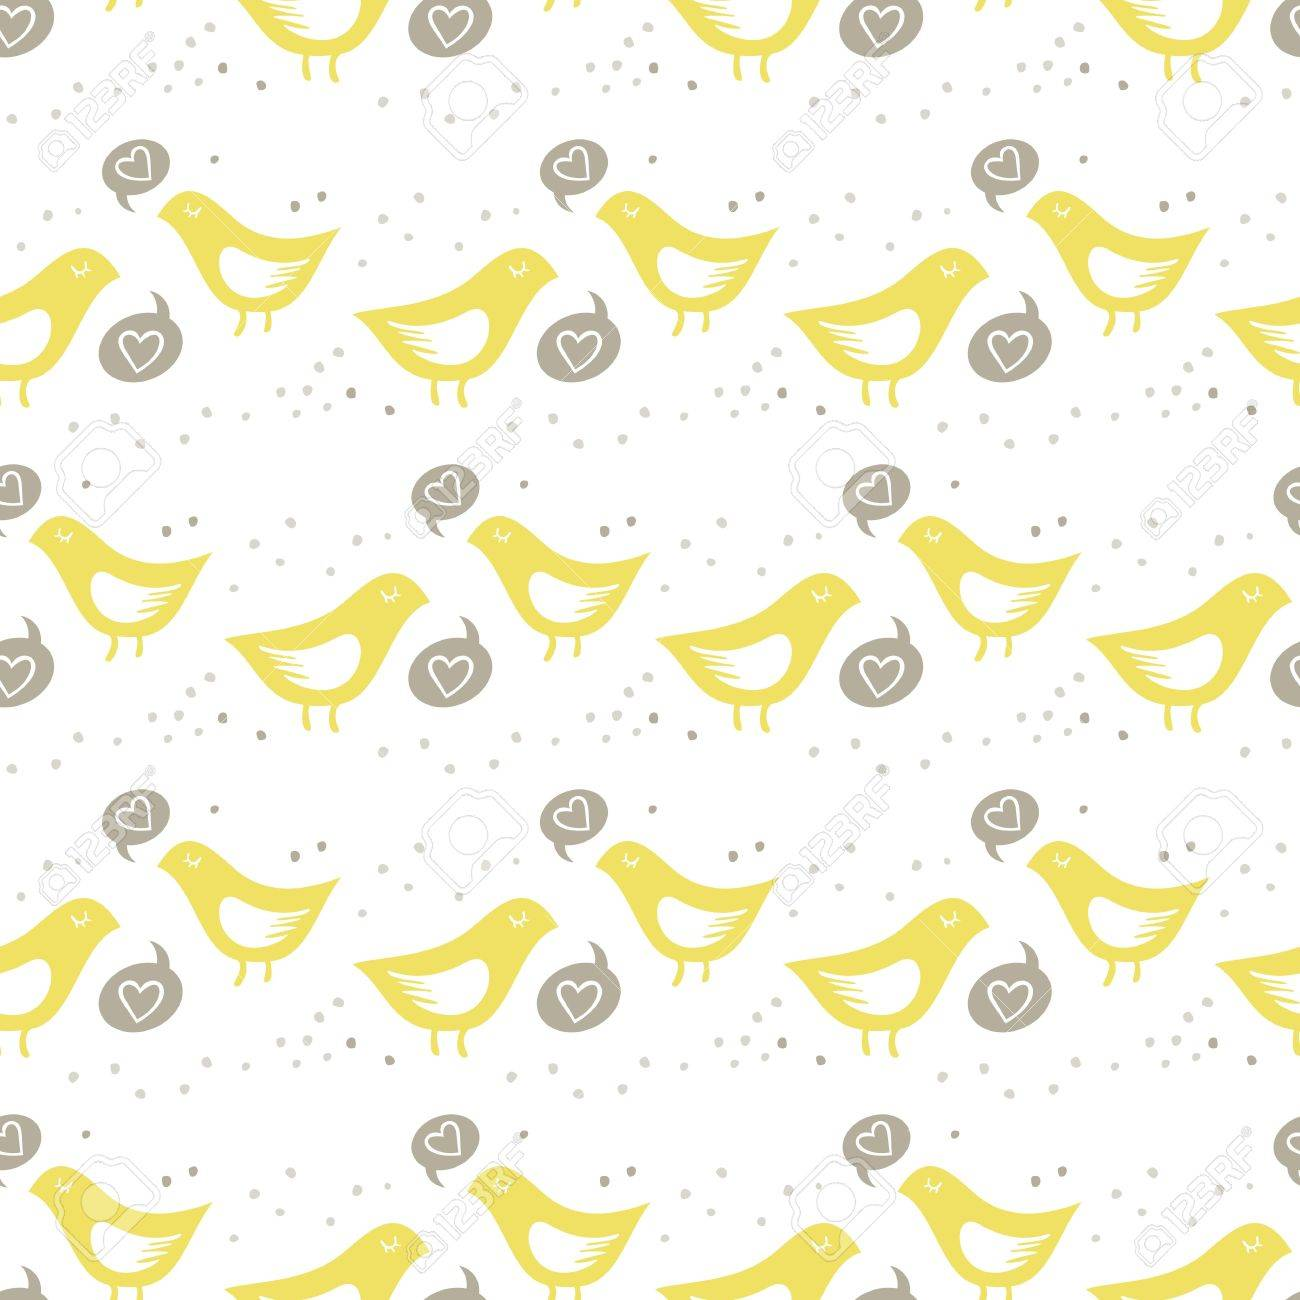 yellow birds singing of love on white background with little dots romantic love marriage wedding seamless pattern Stock Vector - 18688045